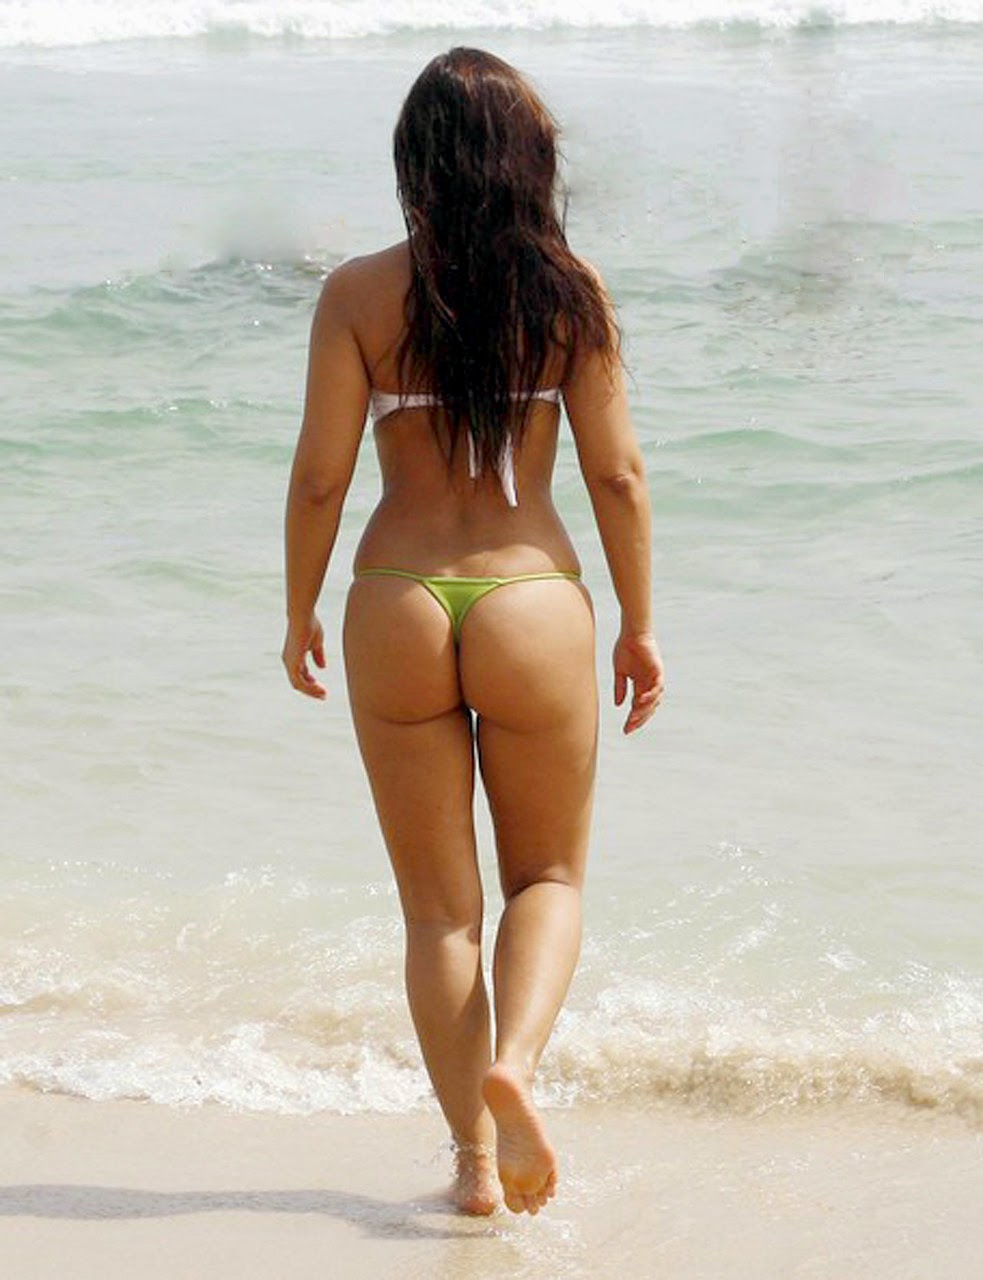 Nana Gouvea Showing Off Her Bikini Body In Rio